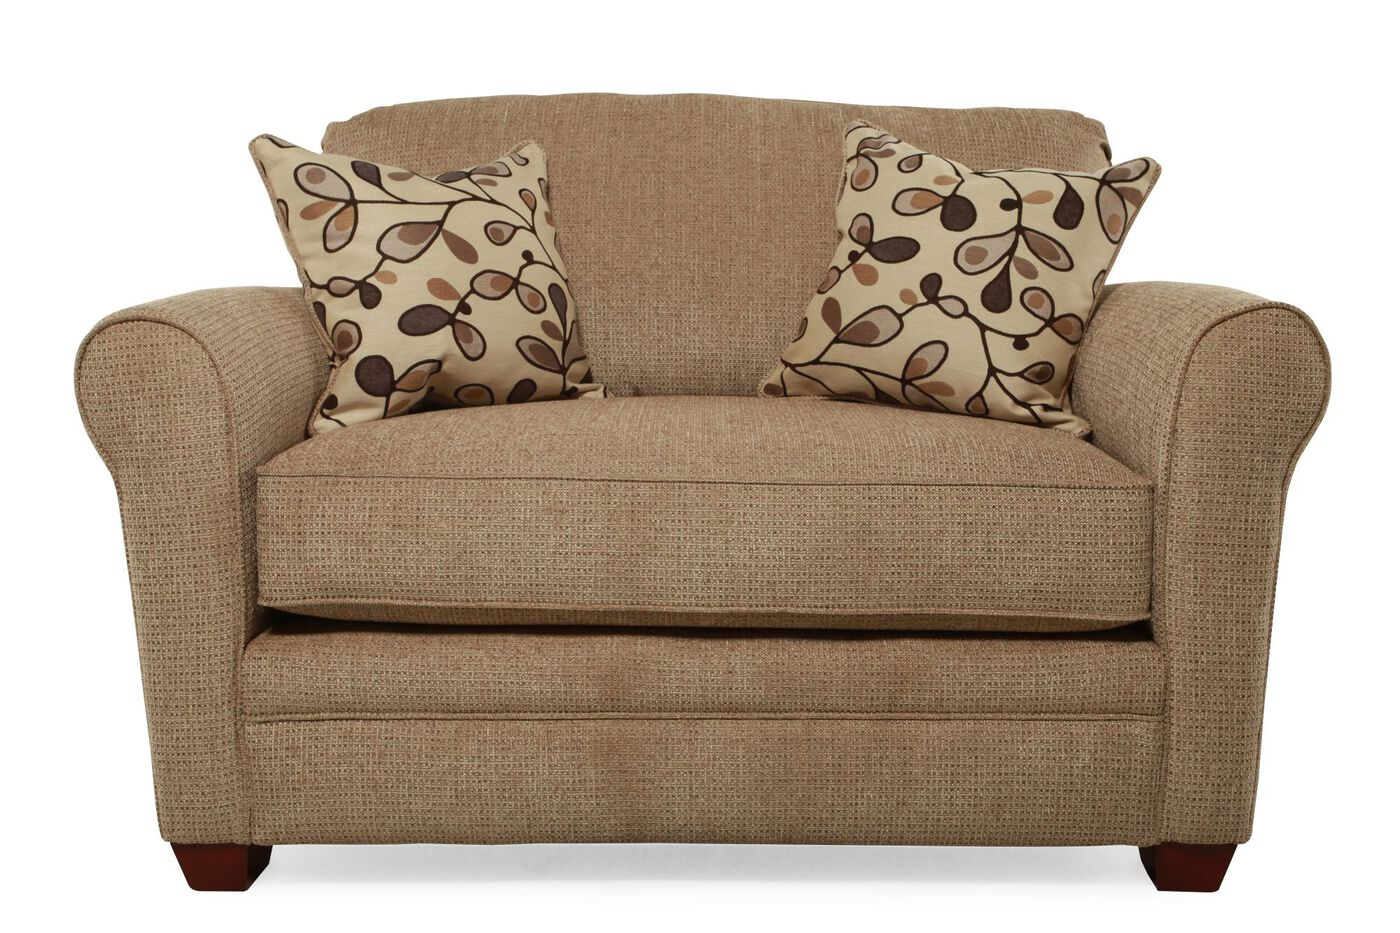 I Rest Casual 56 Quot Sleeper Chair In Brown Mathis Brothers